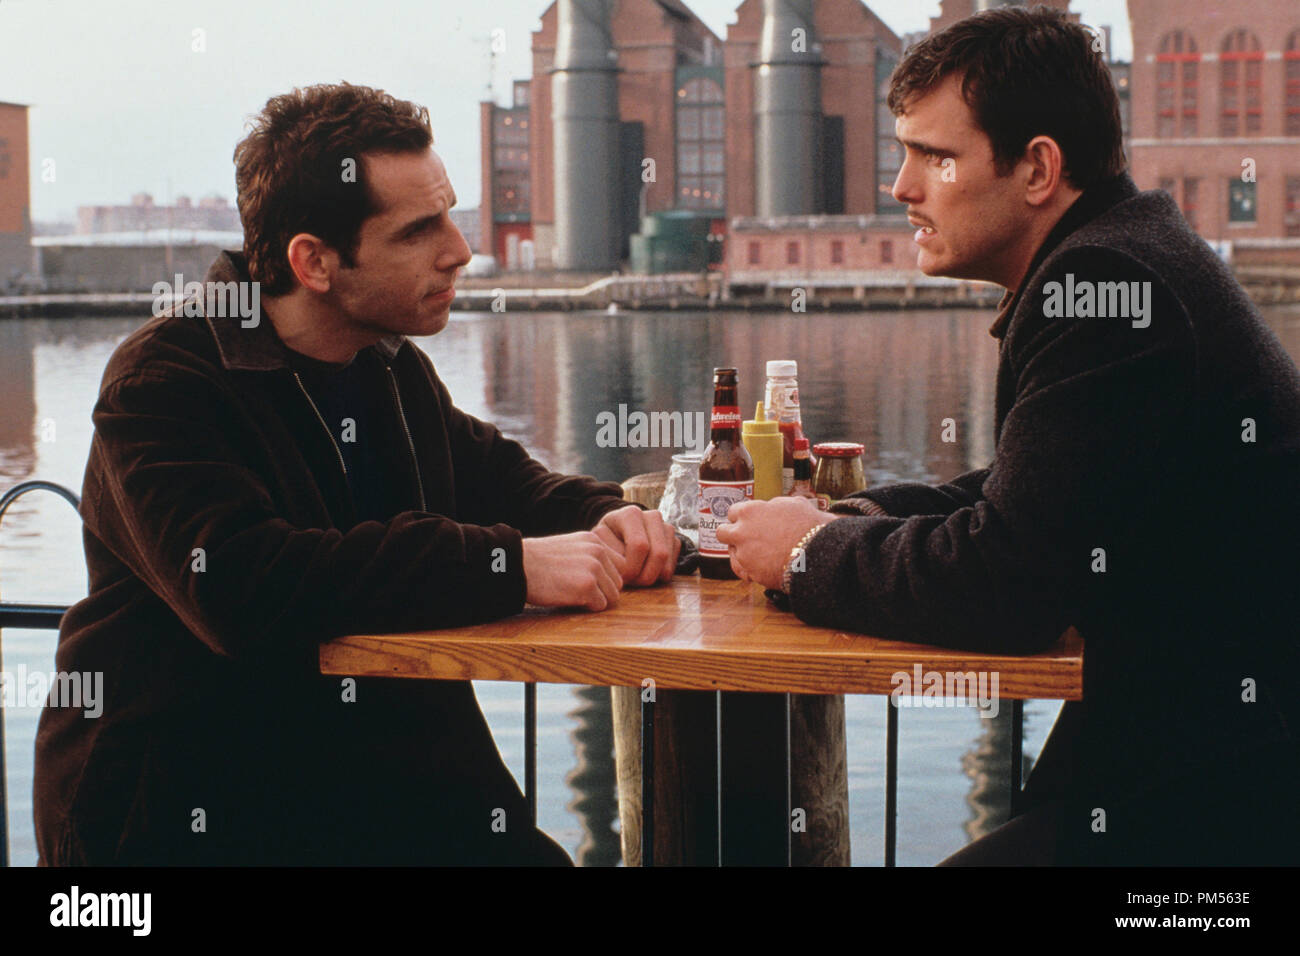 'There's Something About Mary' 1998 Ben Stiller, Matt Dillon - Stock Image